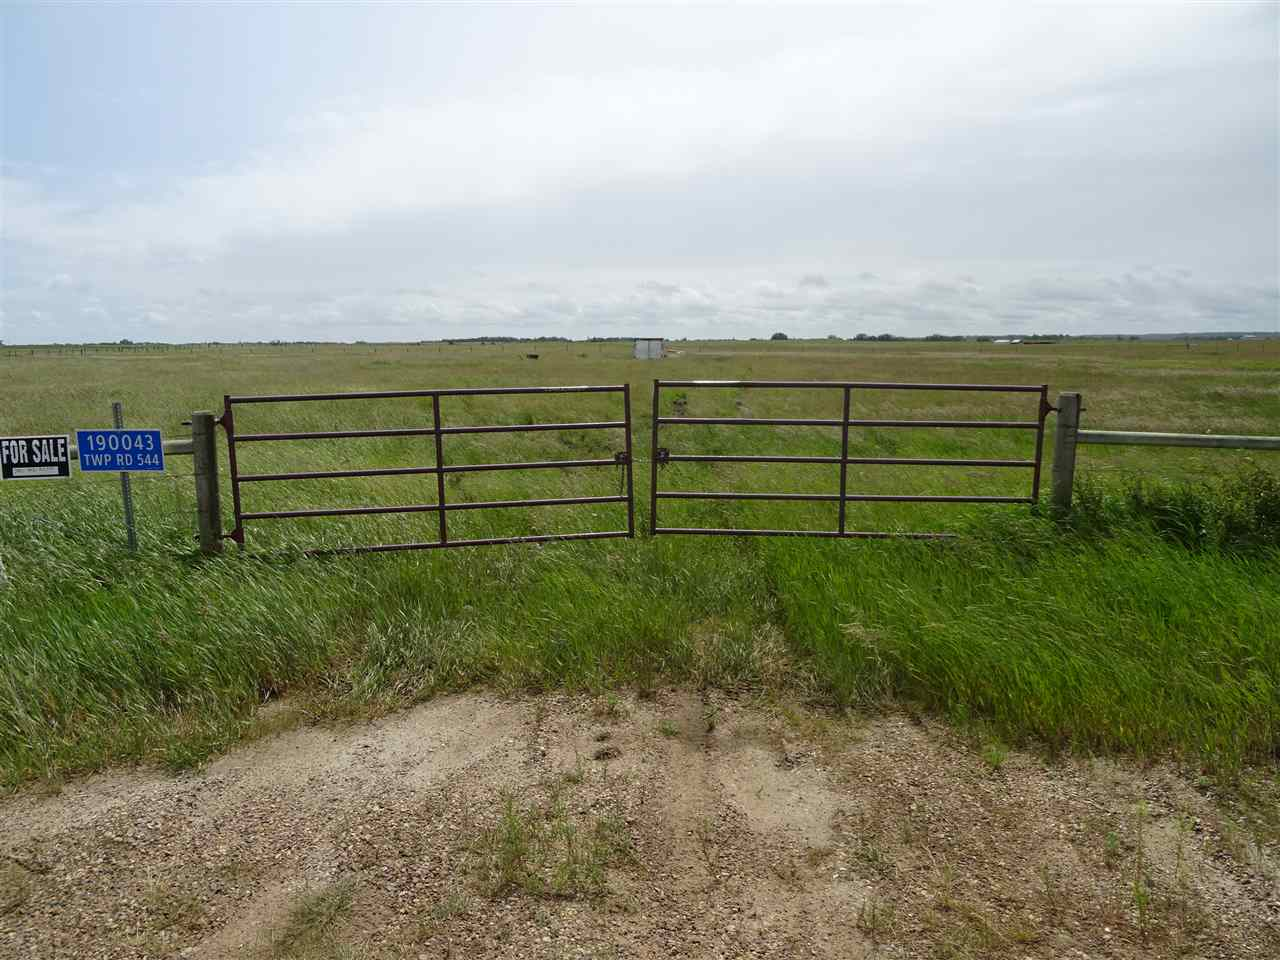 Main Photo: 190043 Twp RD 544: Rural Lamont County Rural Land/Vacant Lot for sale : MLS® # E4047557